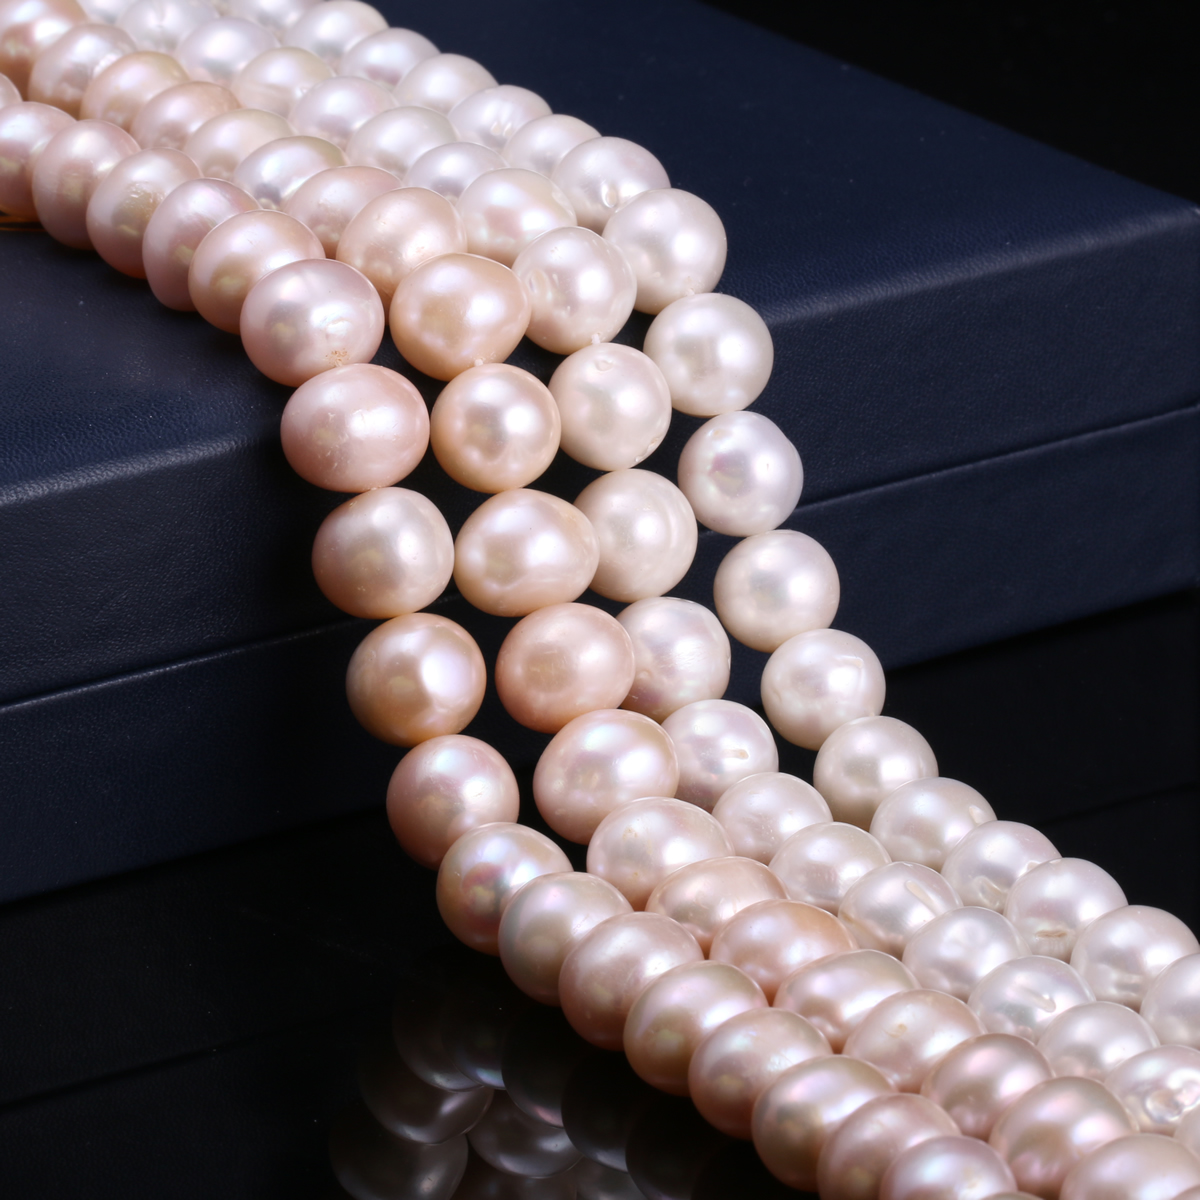 Natural Freshwater Cultured Pearls Beads Round 100% Natural Pearls for Jewelry Making Necklace Bracelet 15 Inches Size 12-13mm edi genuine natural freshwater pearls 5mm 100